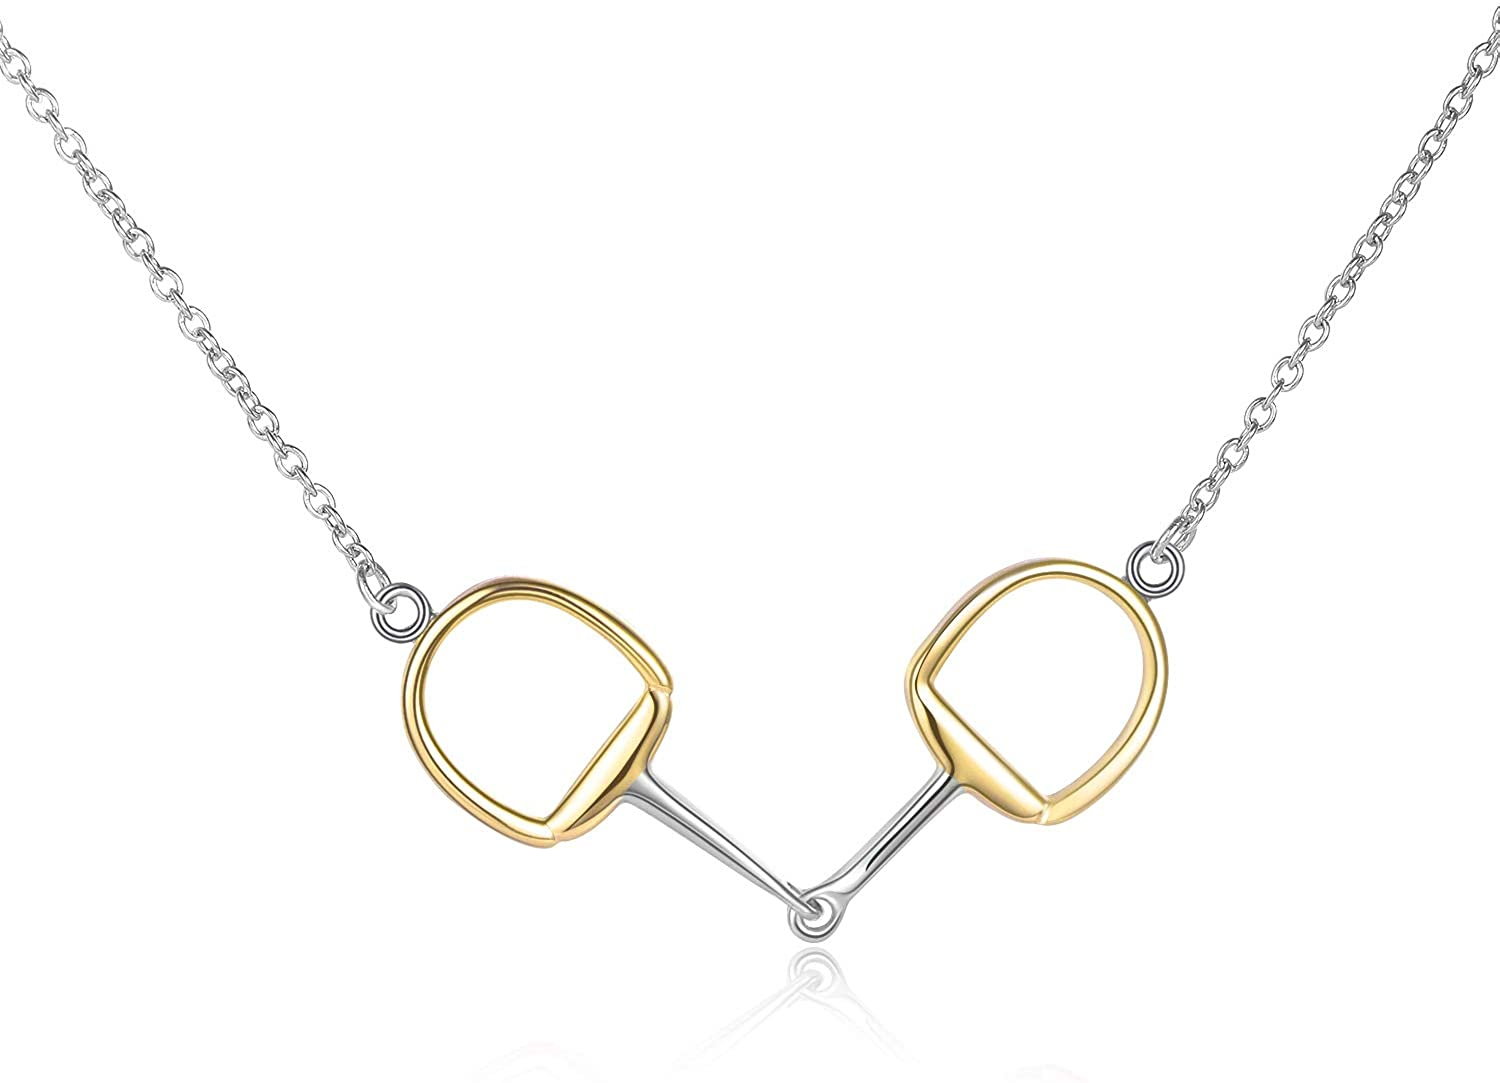 Horse Gift Jewelry 925 Sterling Silver Horse Snaffle Pendant Necklace Horse Gift for Women Girls